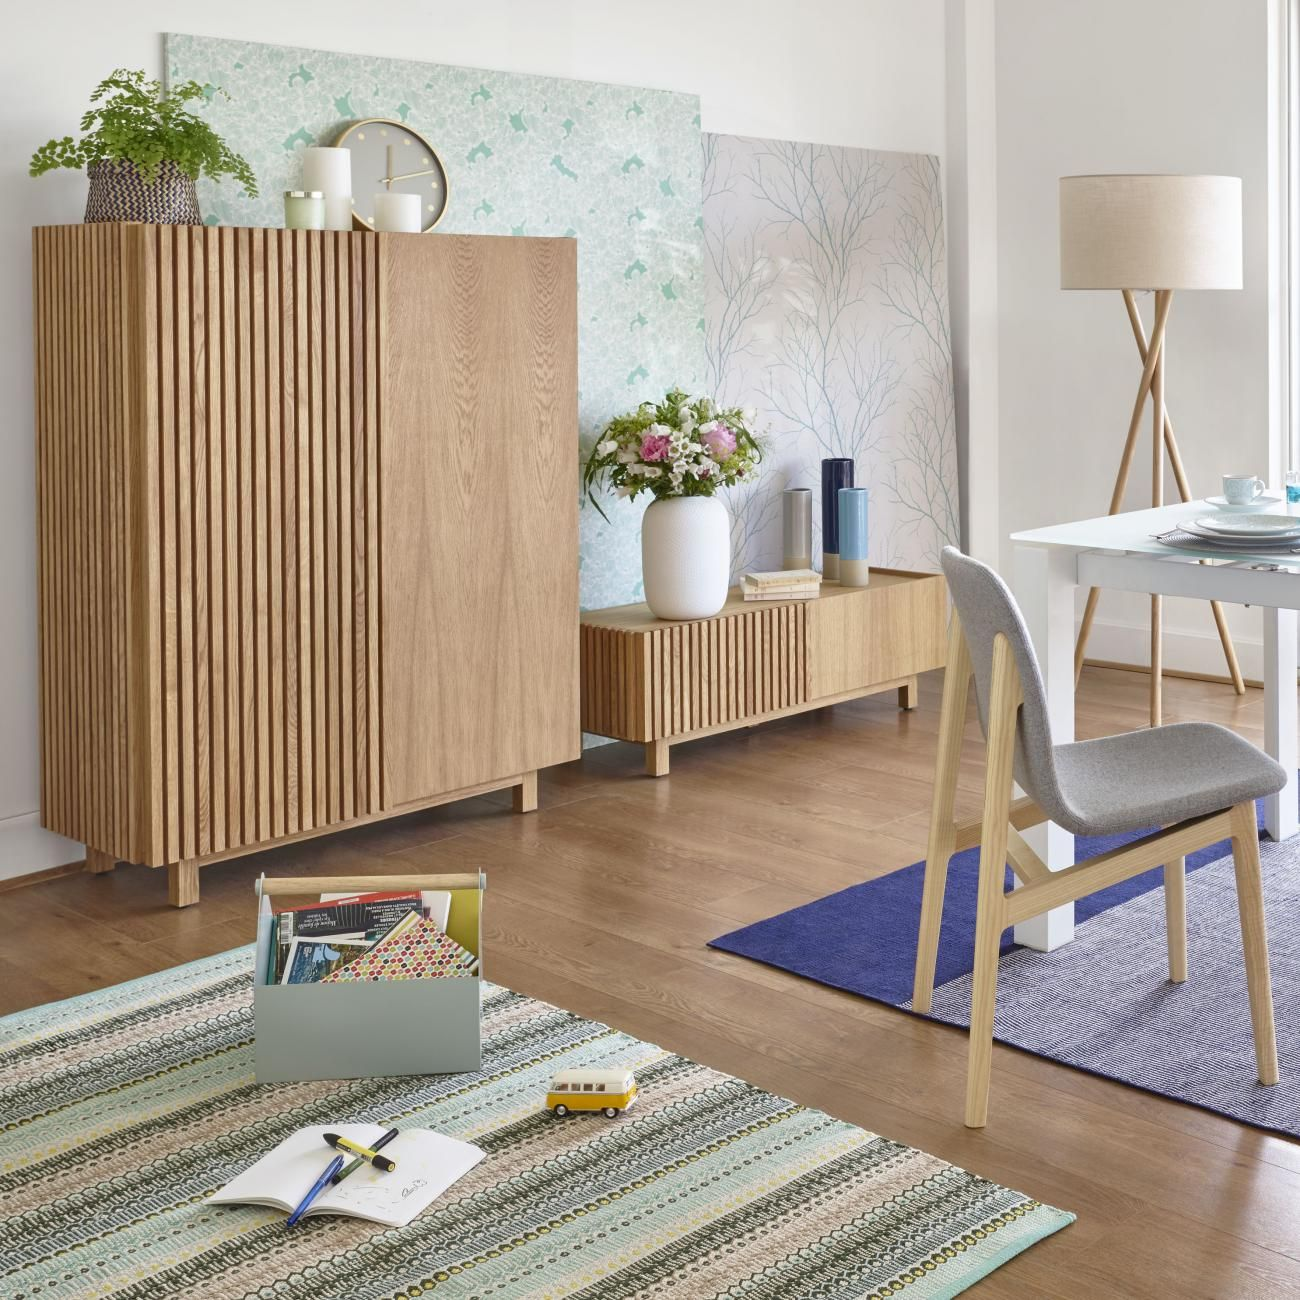 Epingle Par Habitat Page Officielle Sur Habitat Inspiration Scandinave Buffet Haut Deco Interieur Salon Meuble Haut Salon